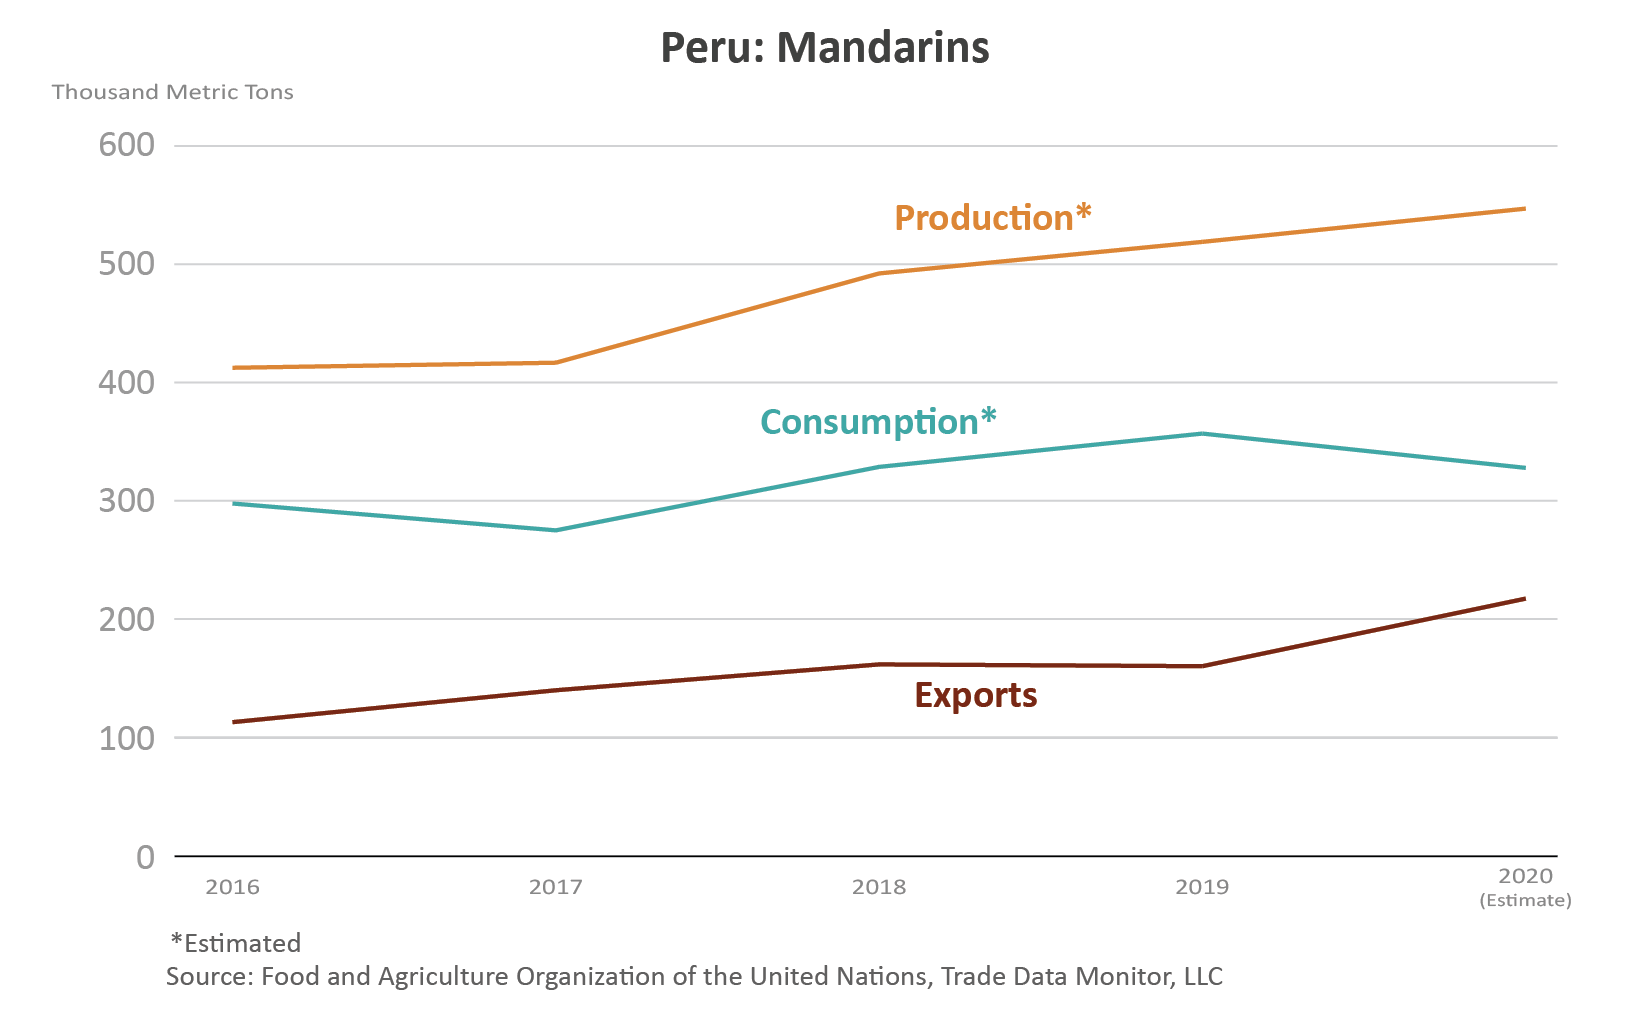 Line graph showings the volume of production, consumption, and exports, for Peru's mandarins